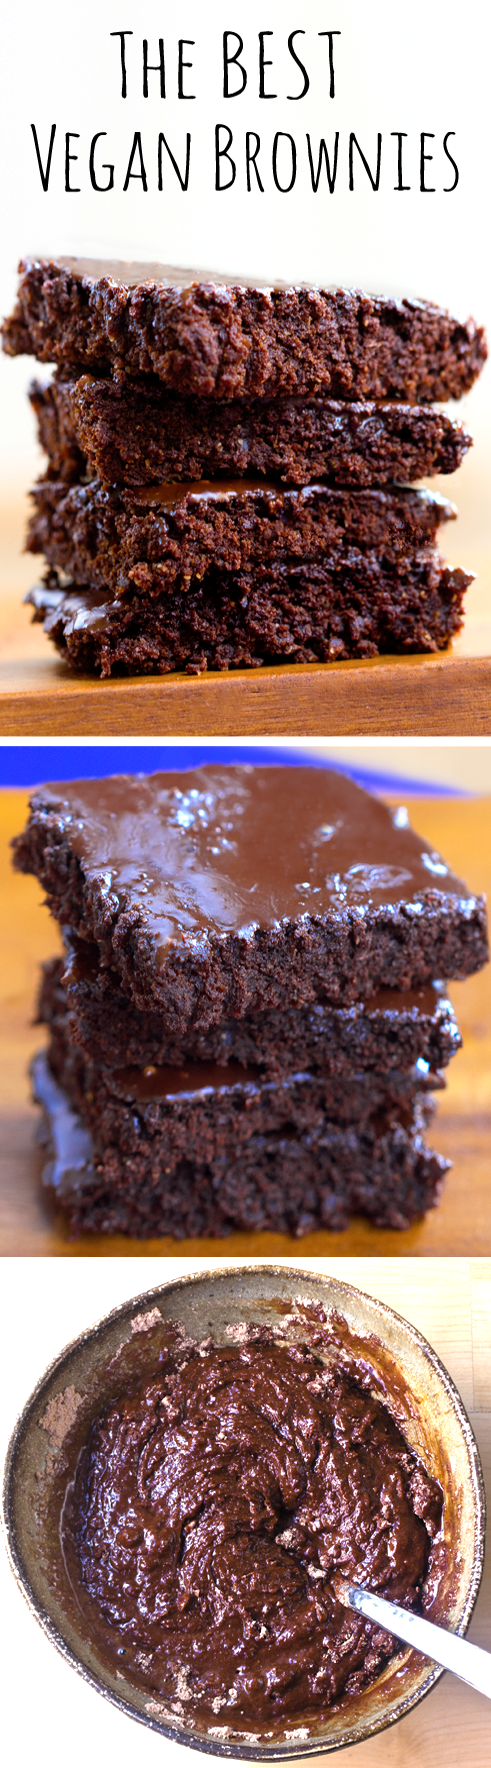 The BEST Vegan Brownies, using pantry staple ingredients (no black beans, no tofu)